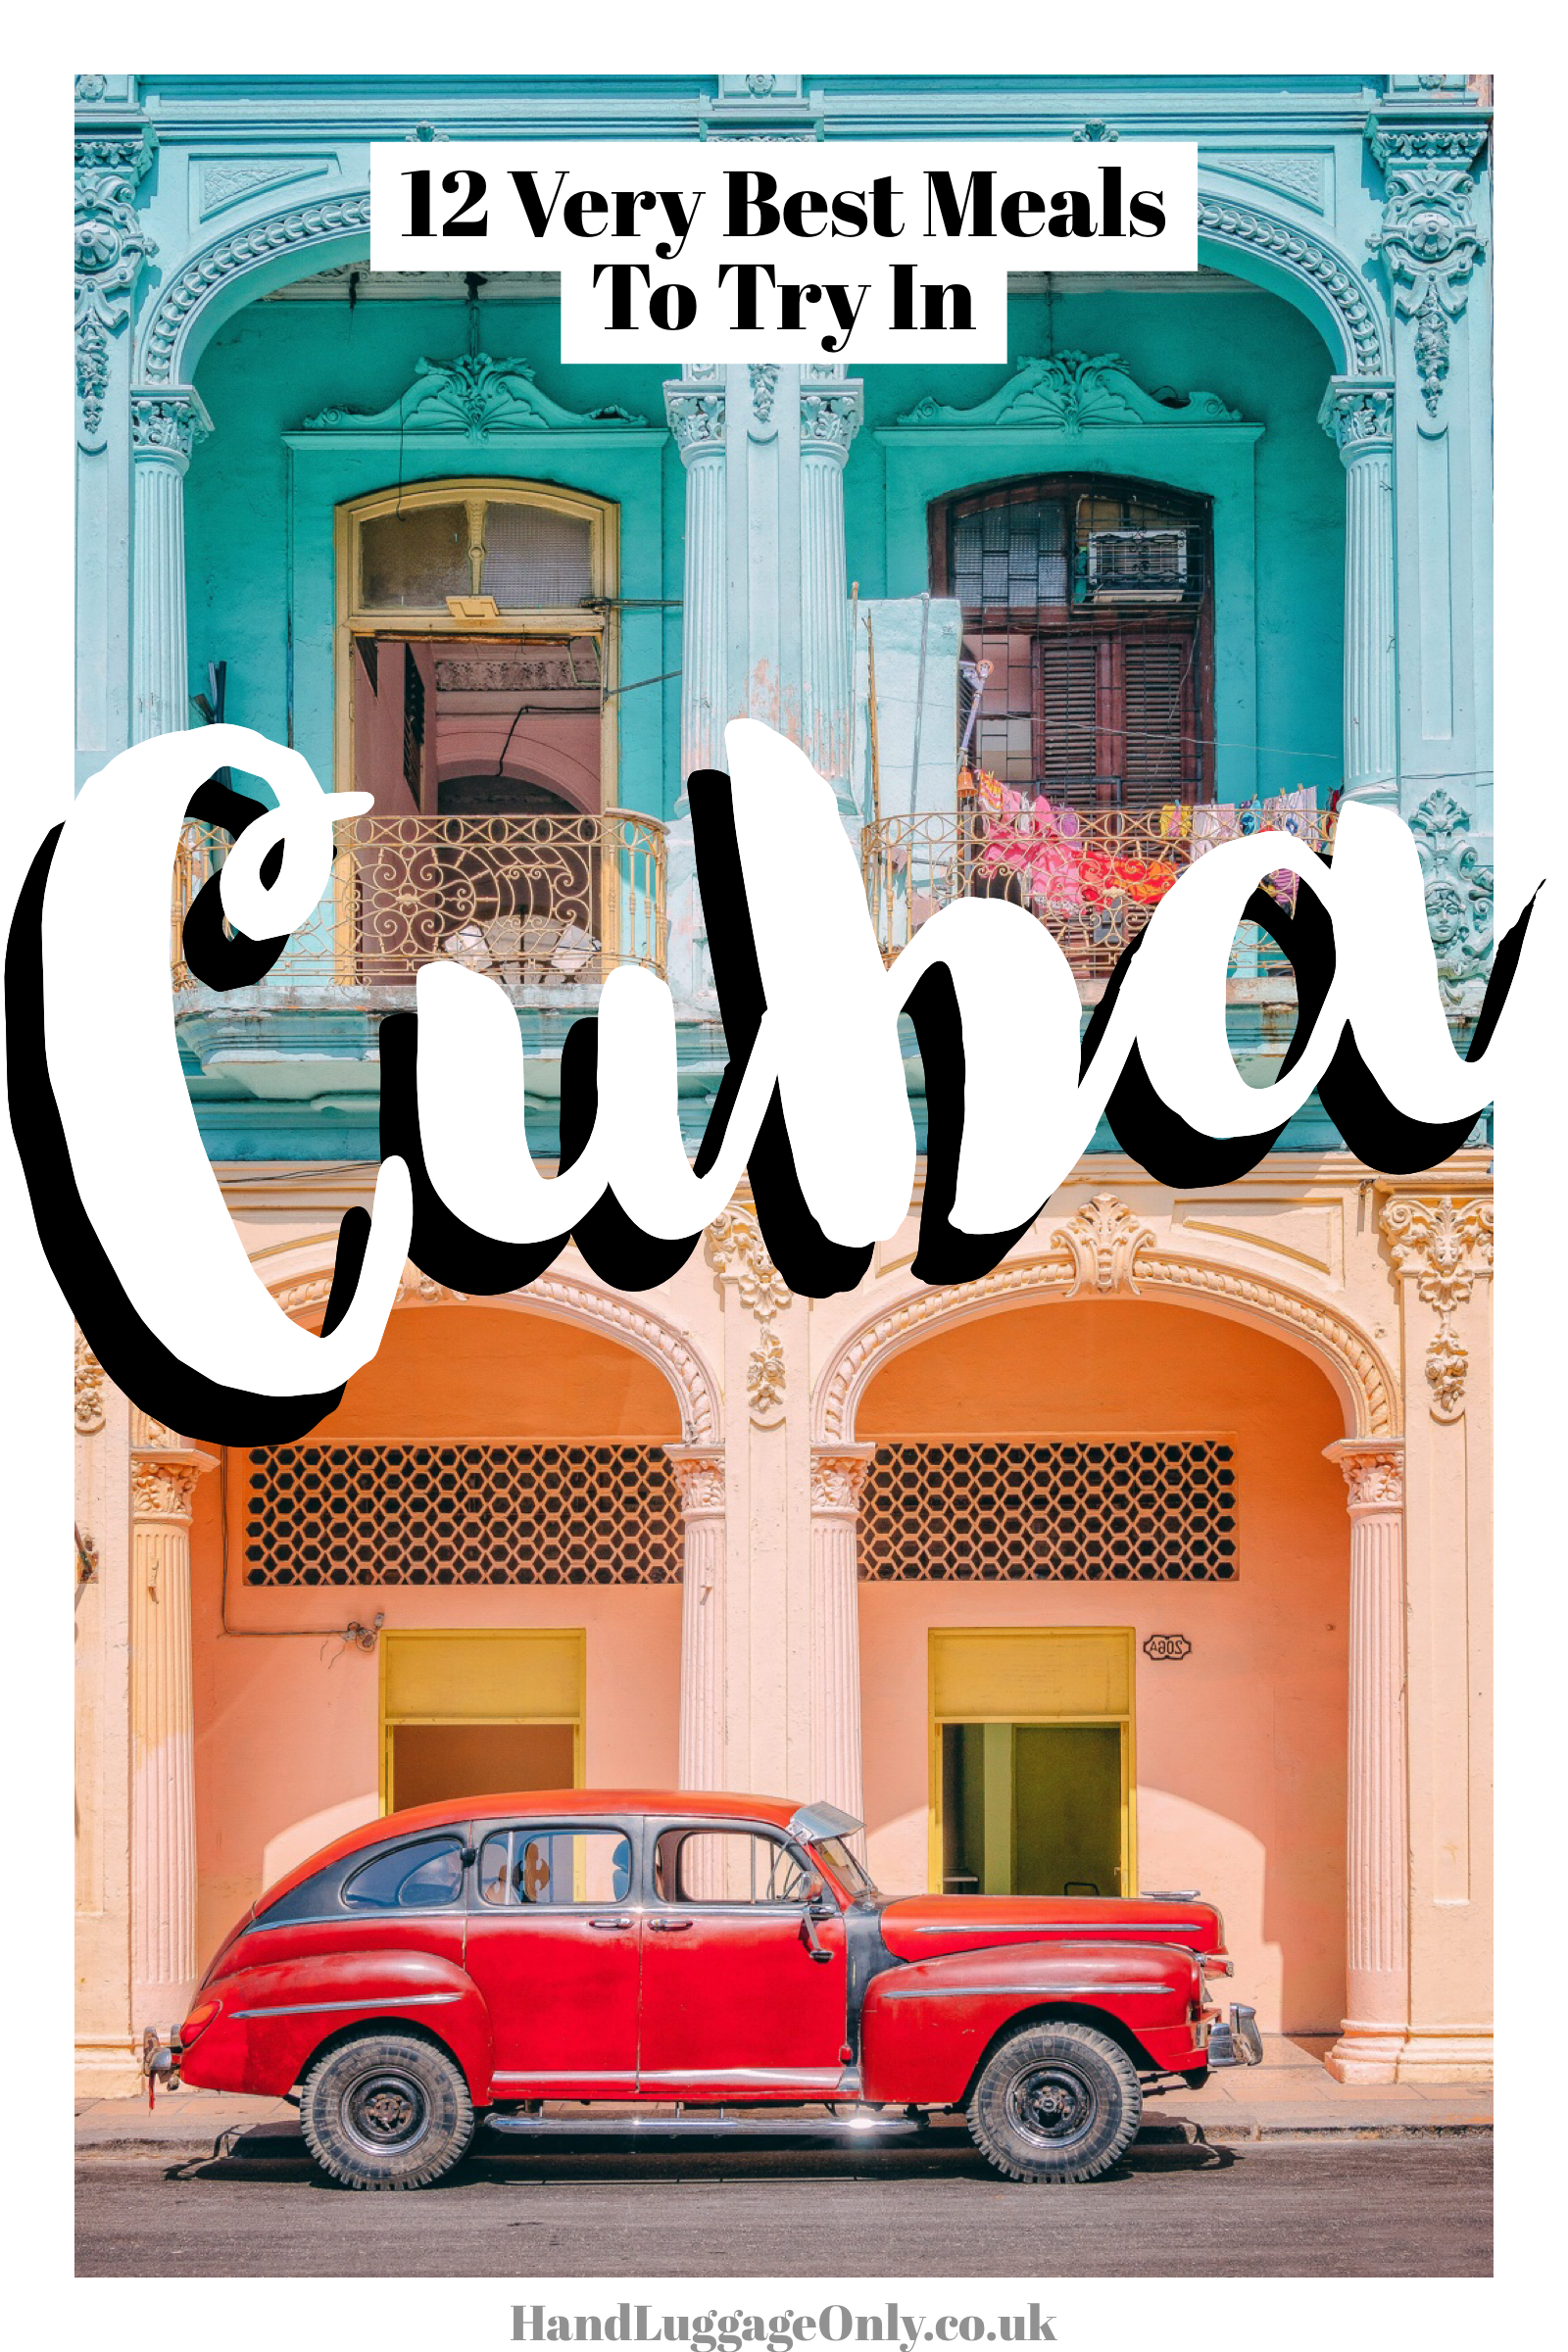 12 Very Best Cuban Food To Try In Cuba (1)